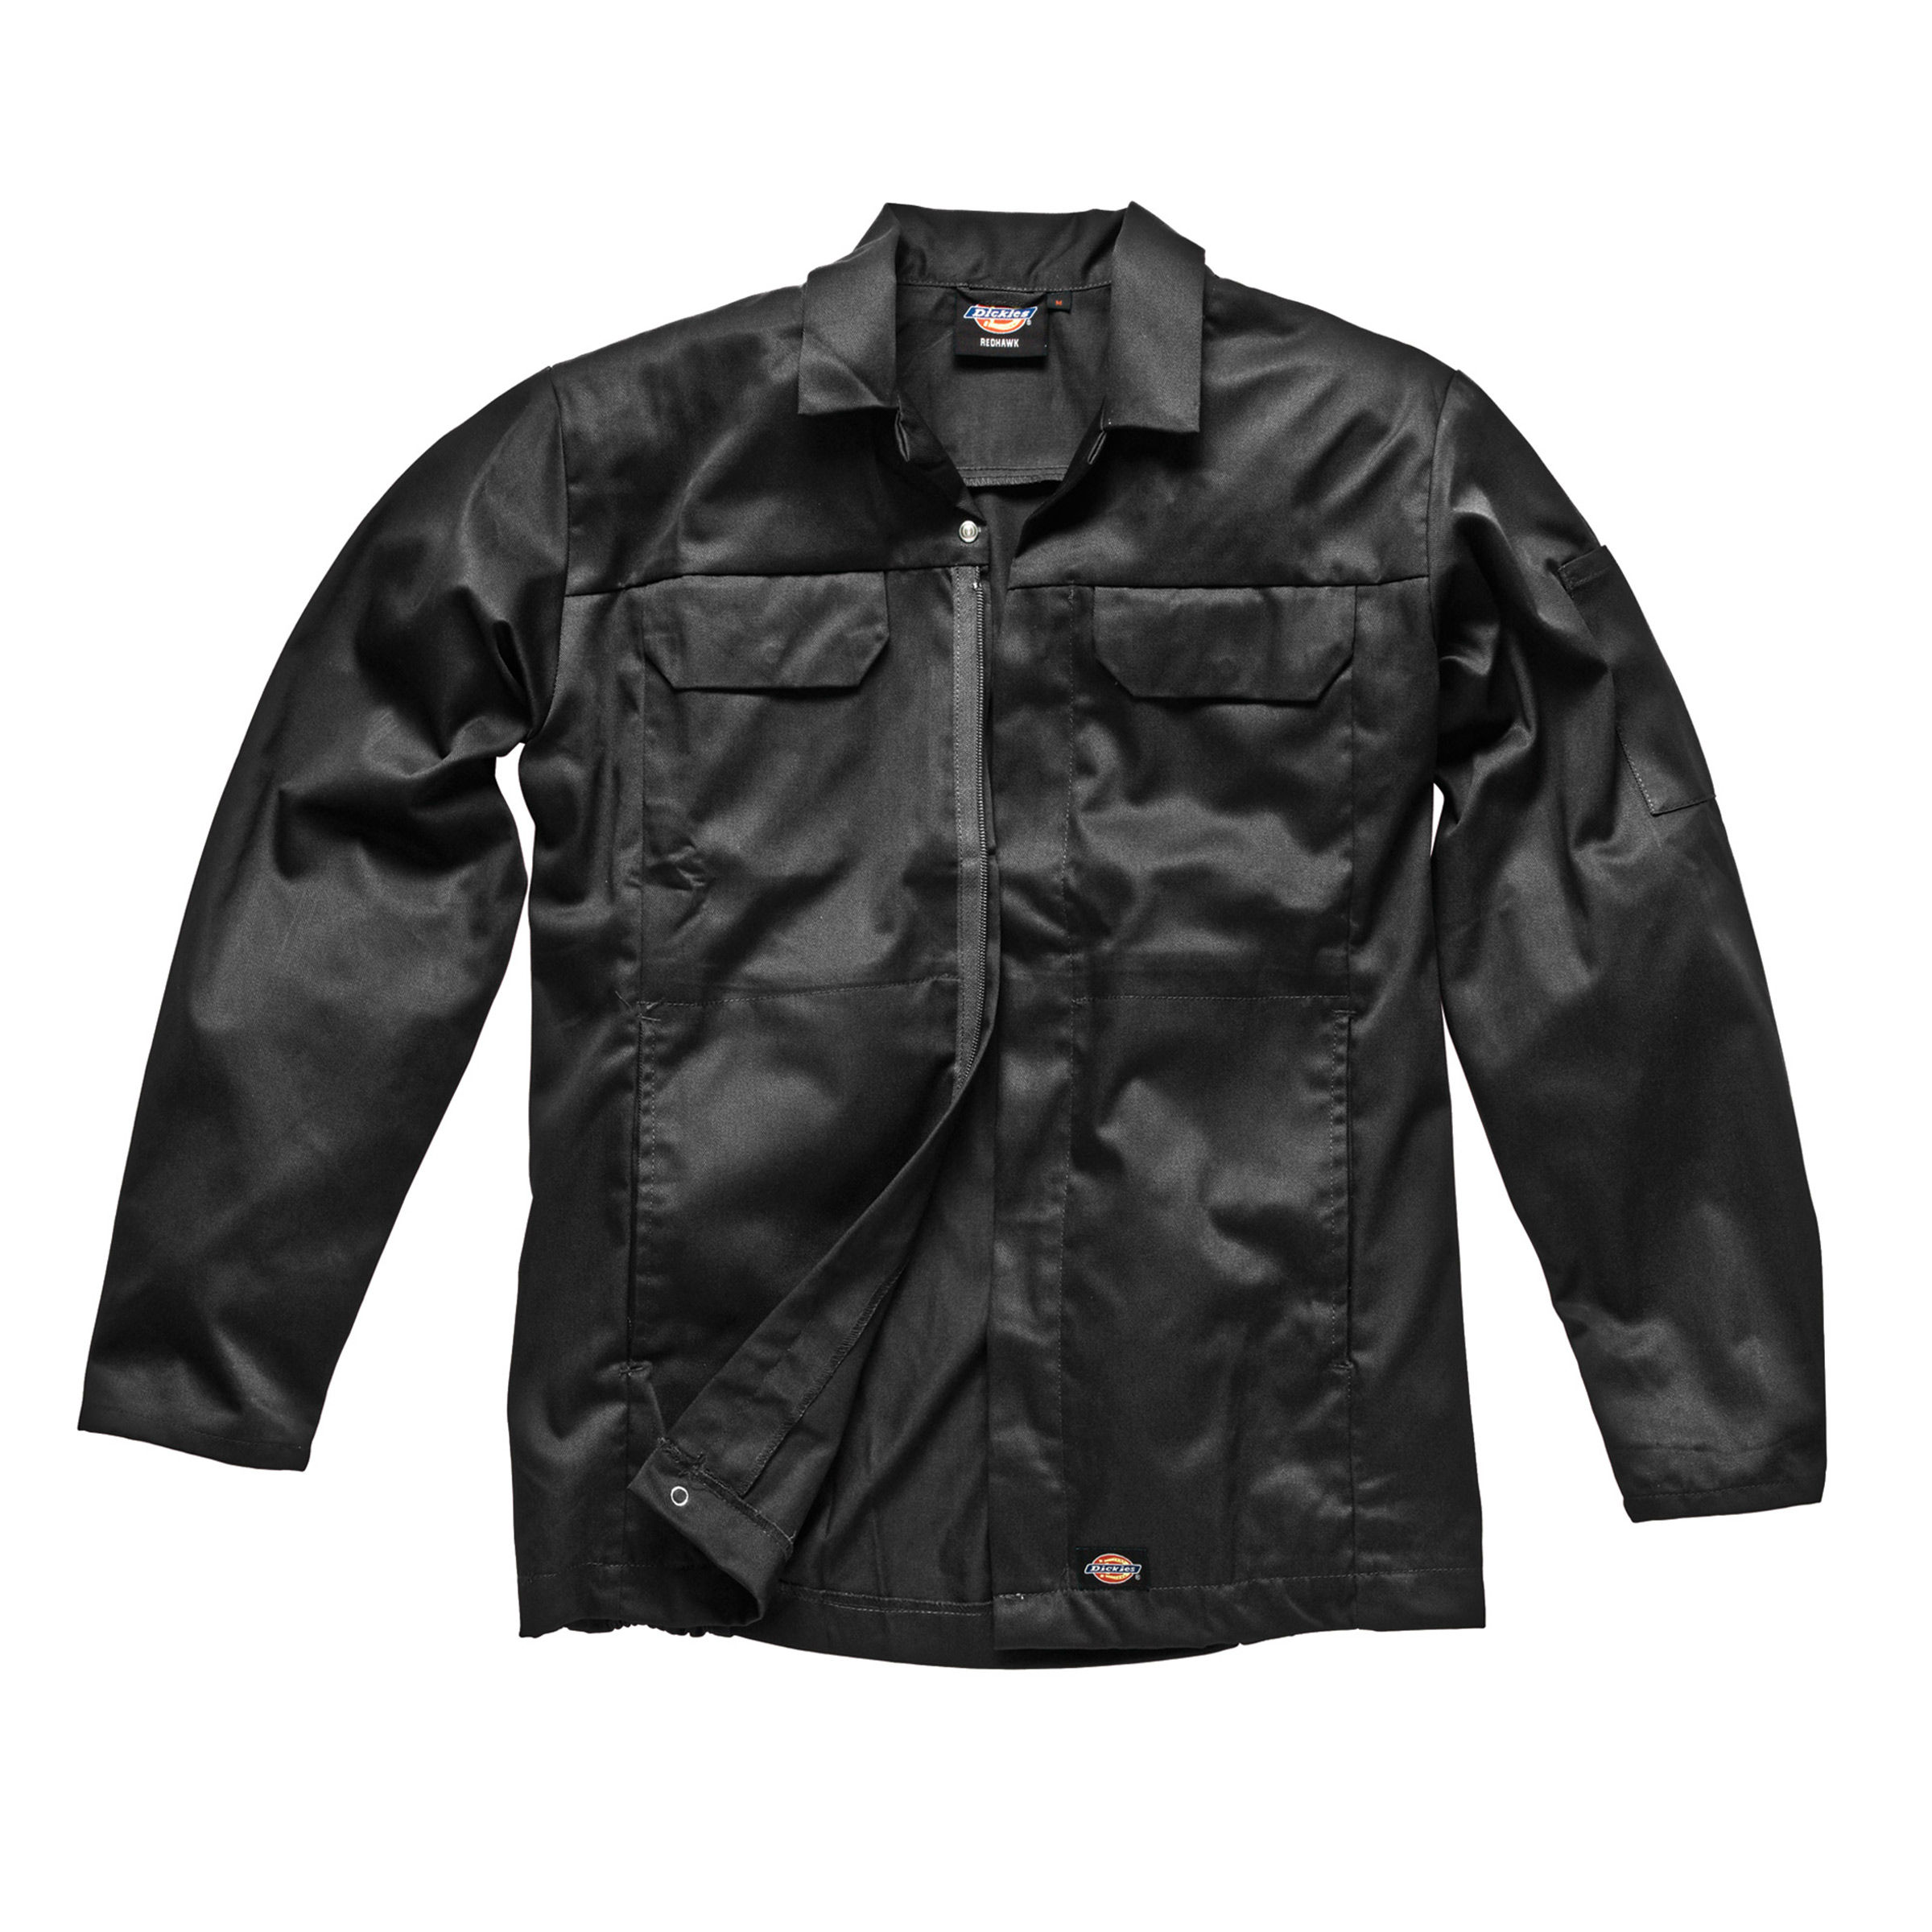 Dickies WD954 Redhawk Jacket with Multiple Pockets (Black) - SMALL